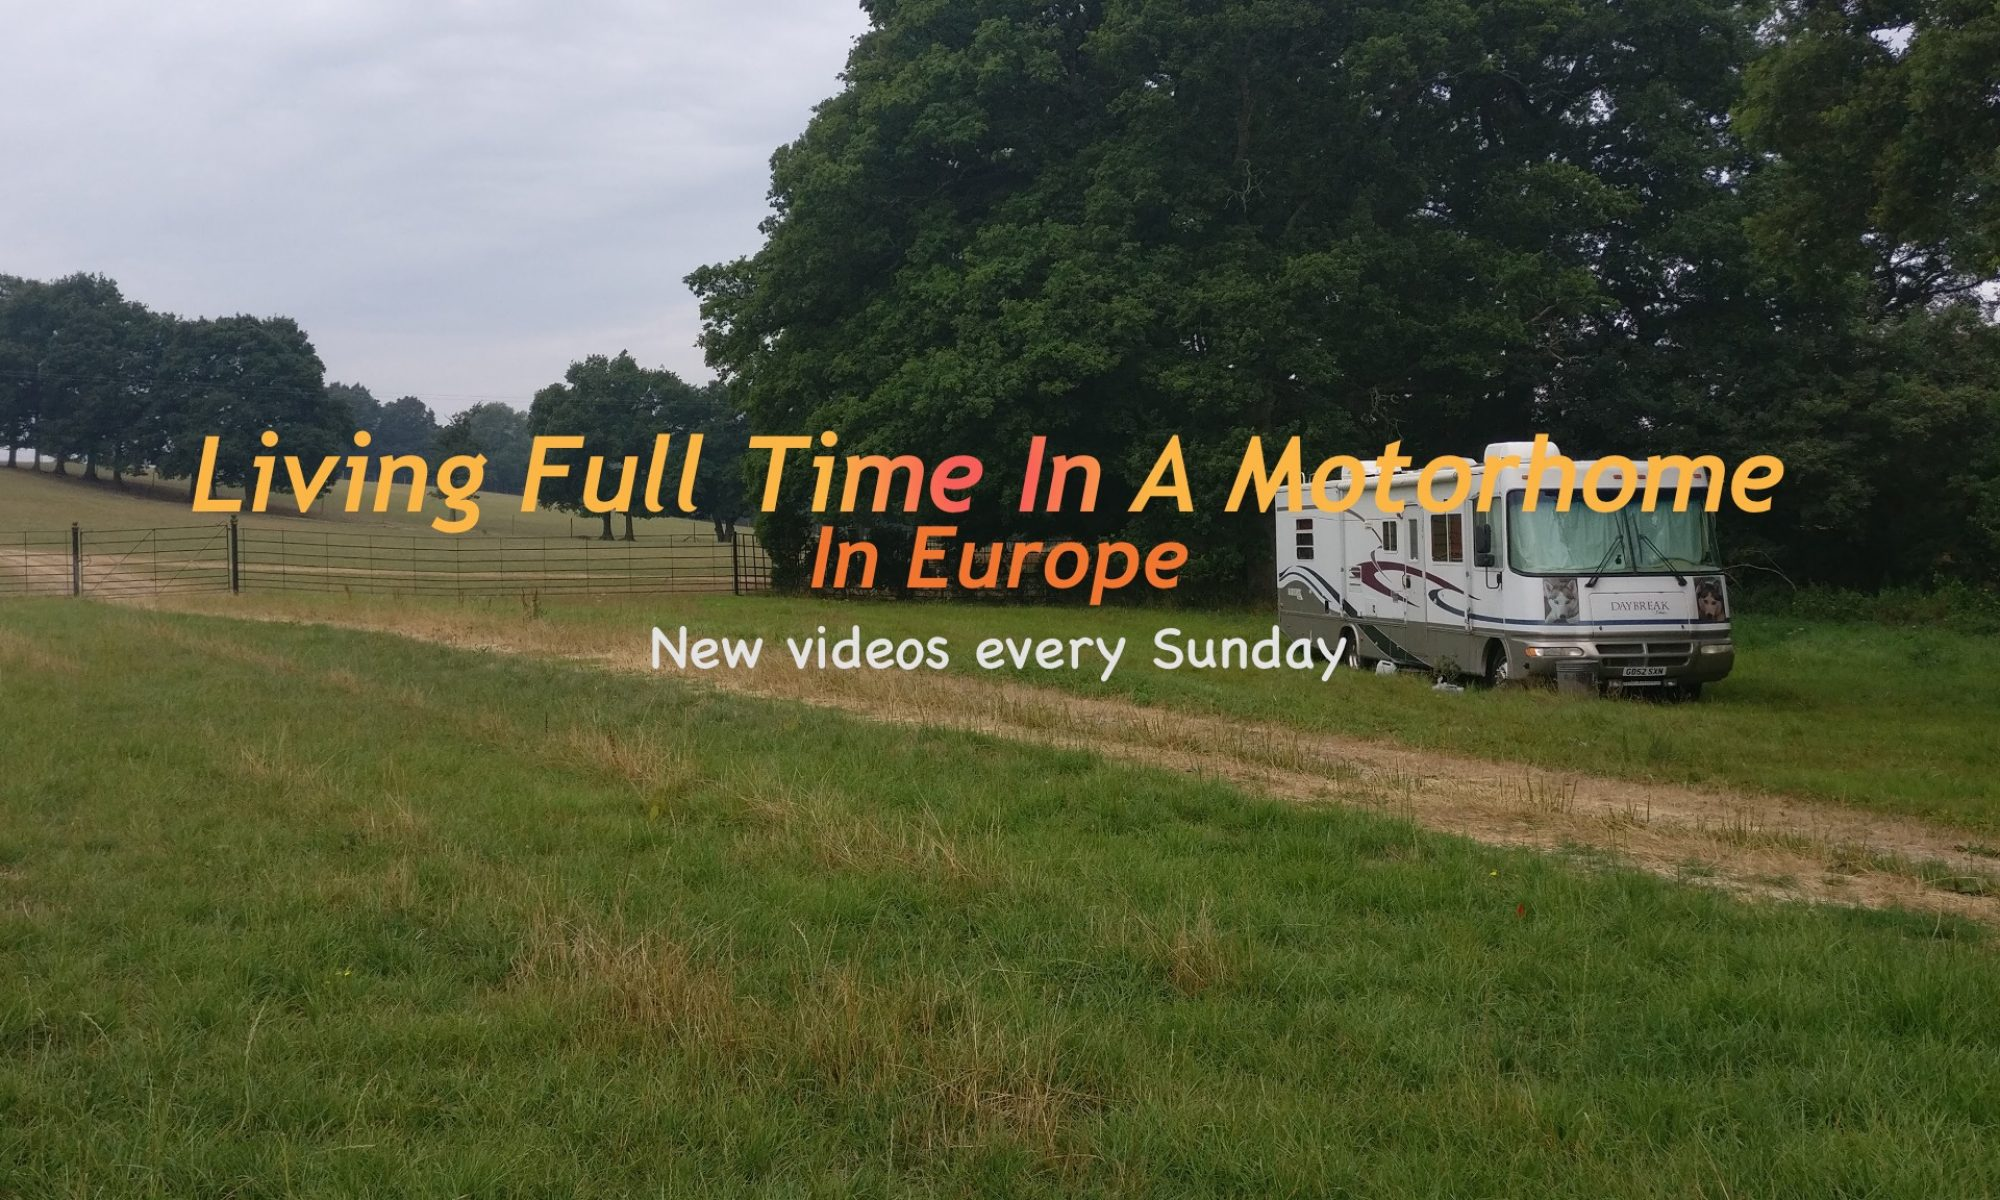 Full Time Living In A Motorhome In Europe